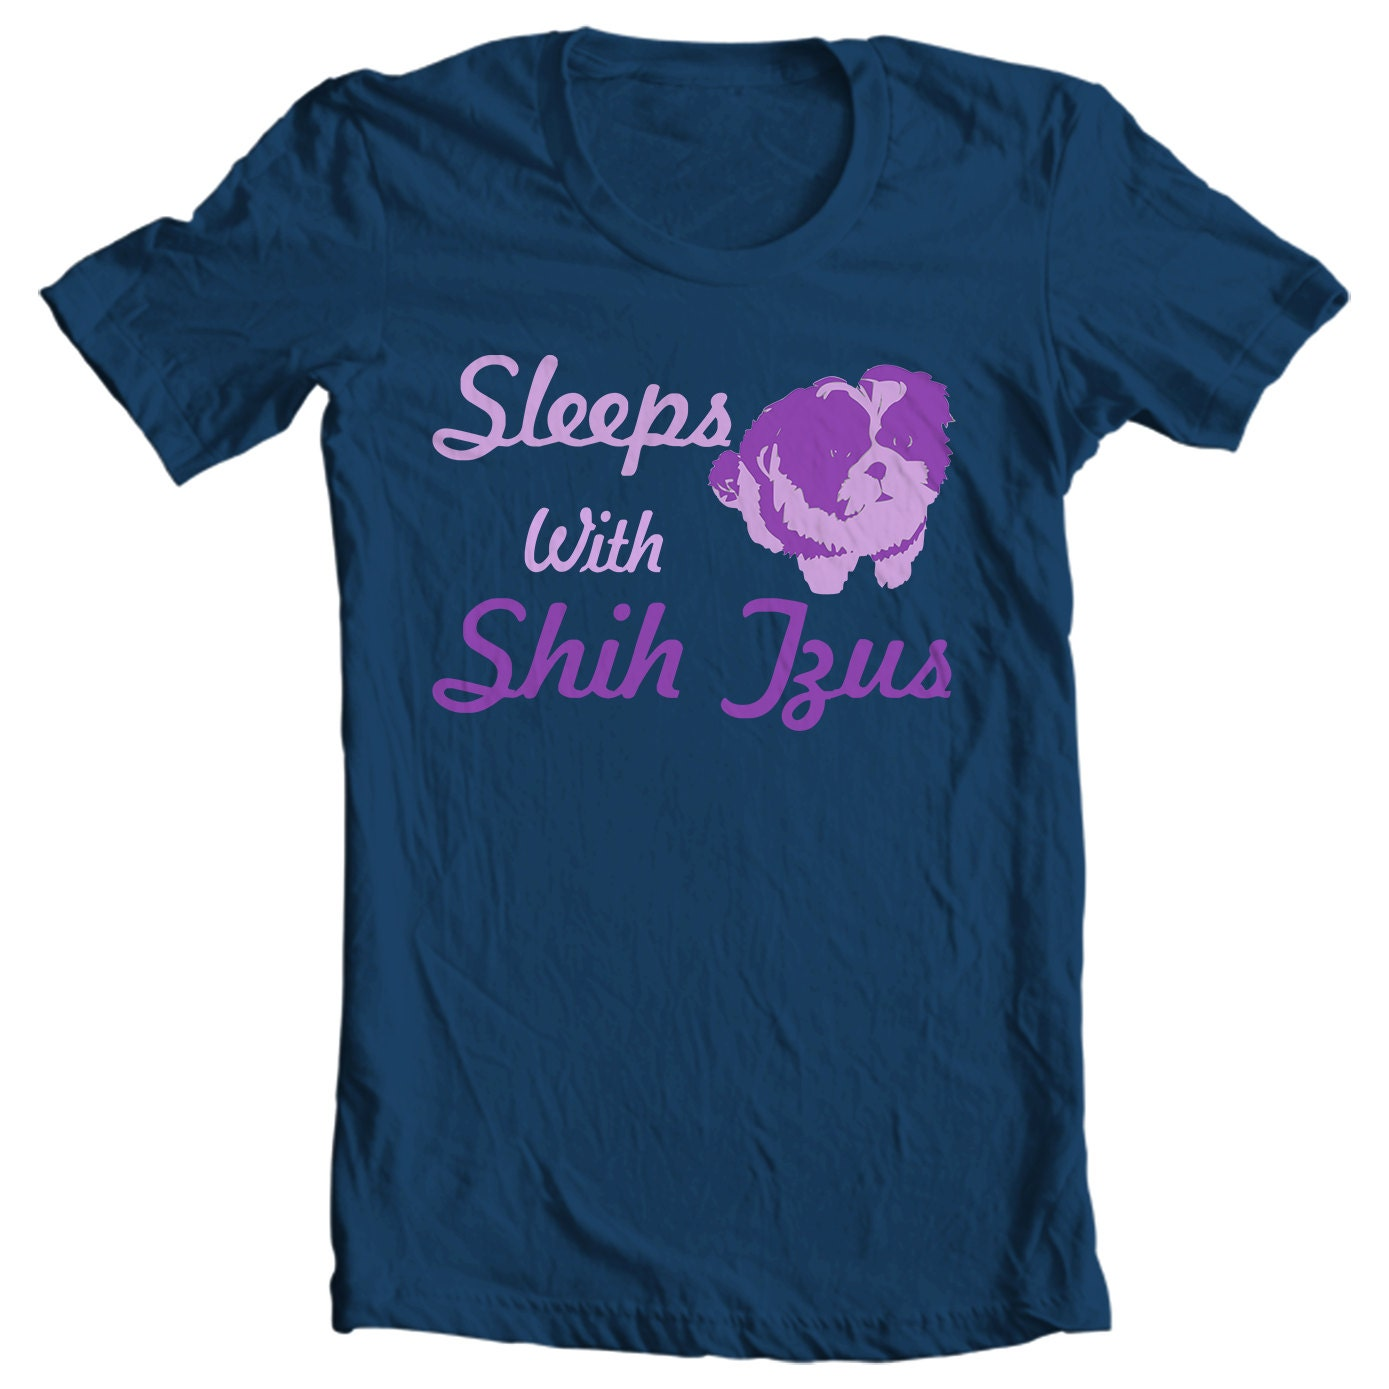 Sleeps With Shih Tzus T-shirt - Only Shih Tzus